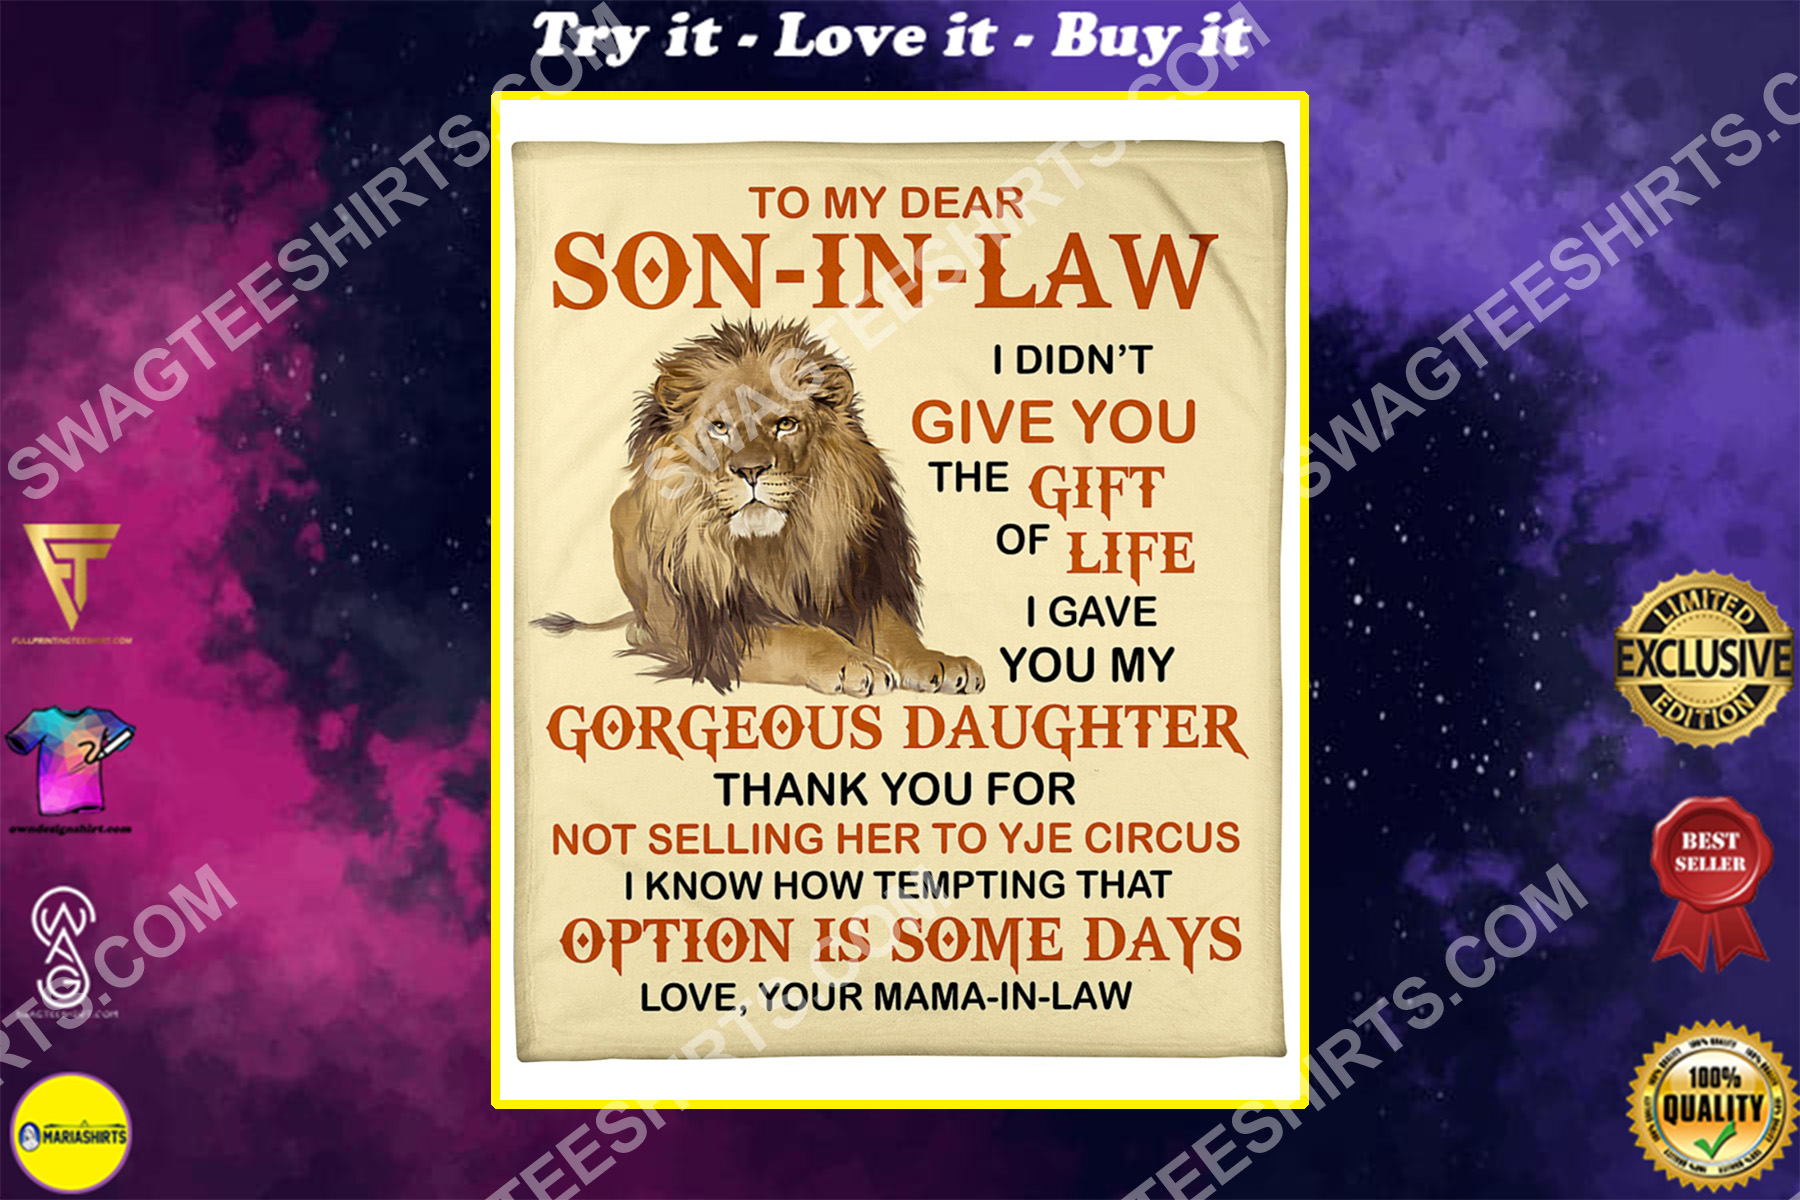 lion to my dear son-in-law love your mother-in-law blanket